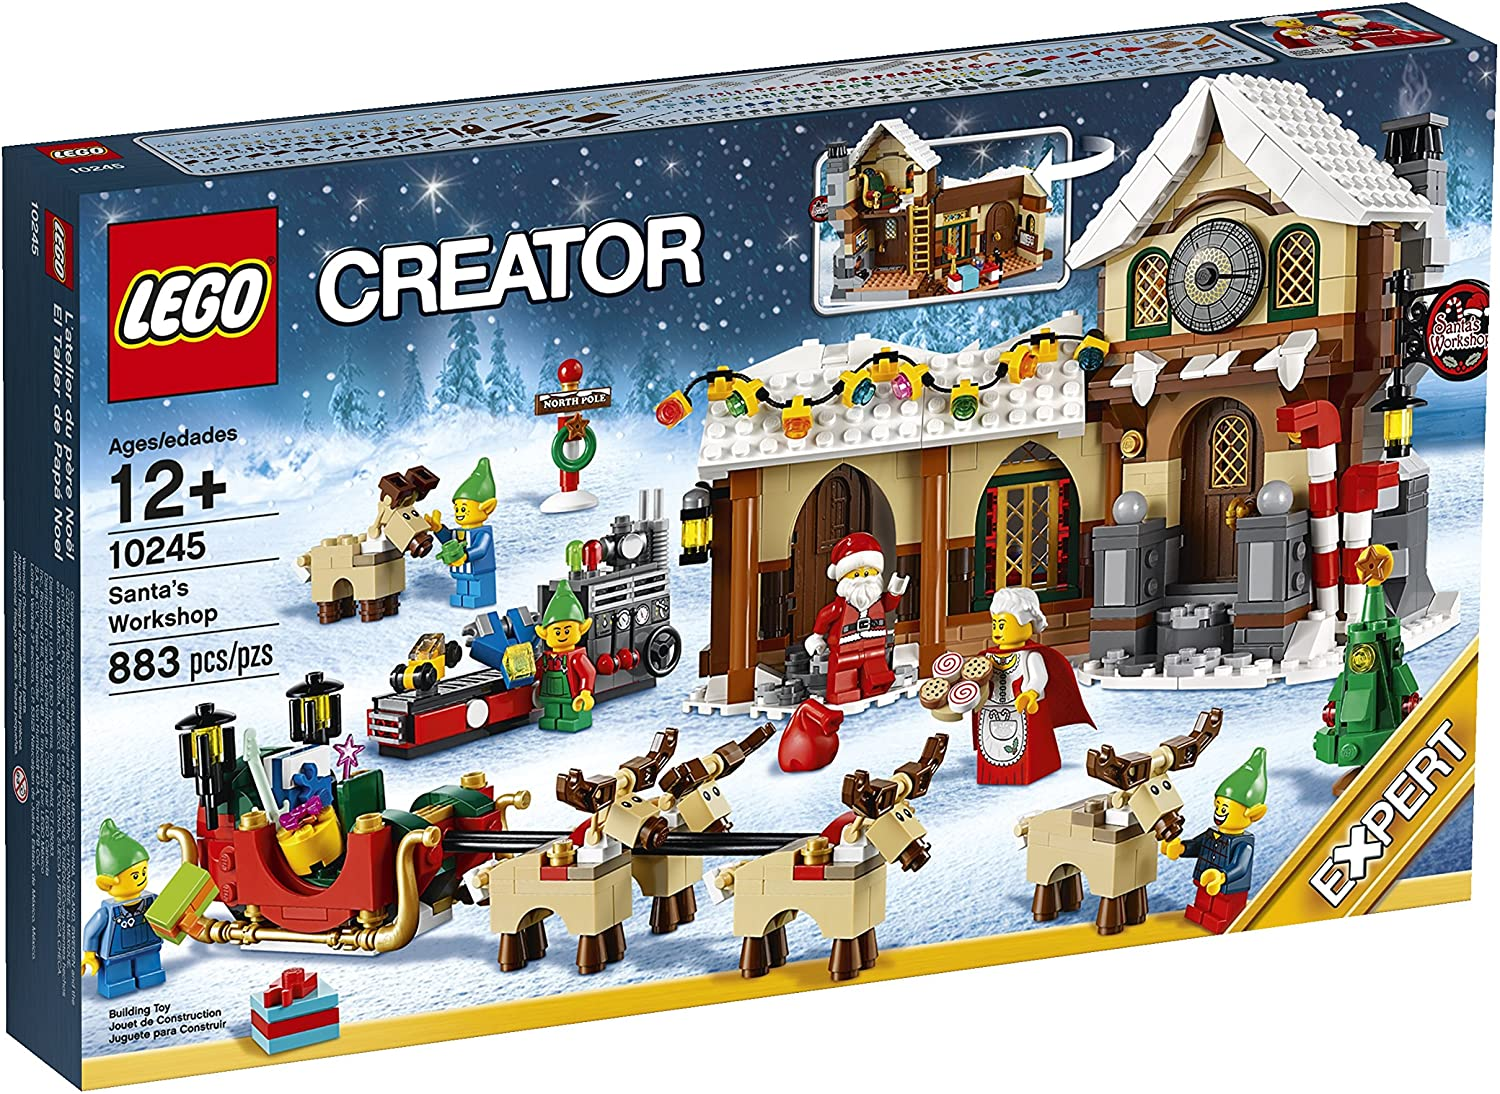 Lego Christmas Village 2020 LEGO Creator Winter Village Elf Clubhouse (10275) Rumored for 2020